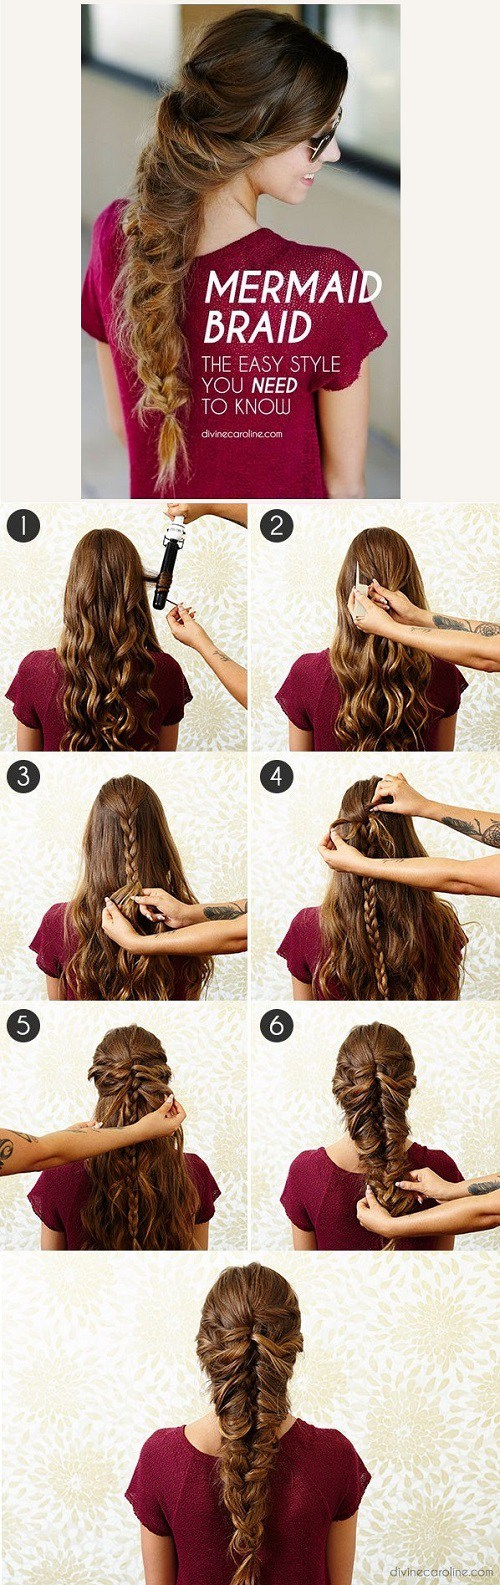 20 easy elegant stepbystep hair tutorials for long